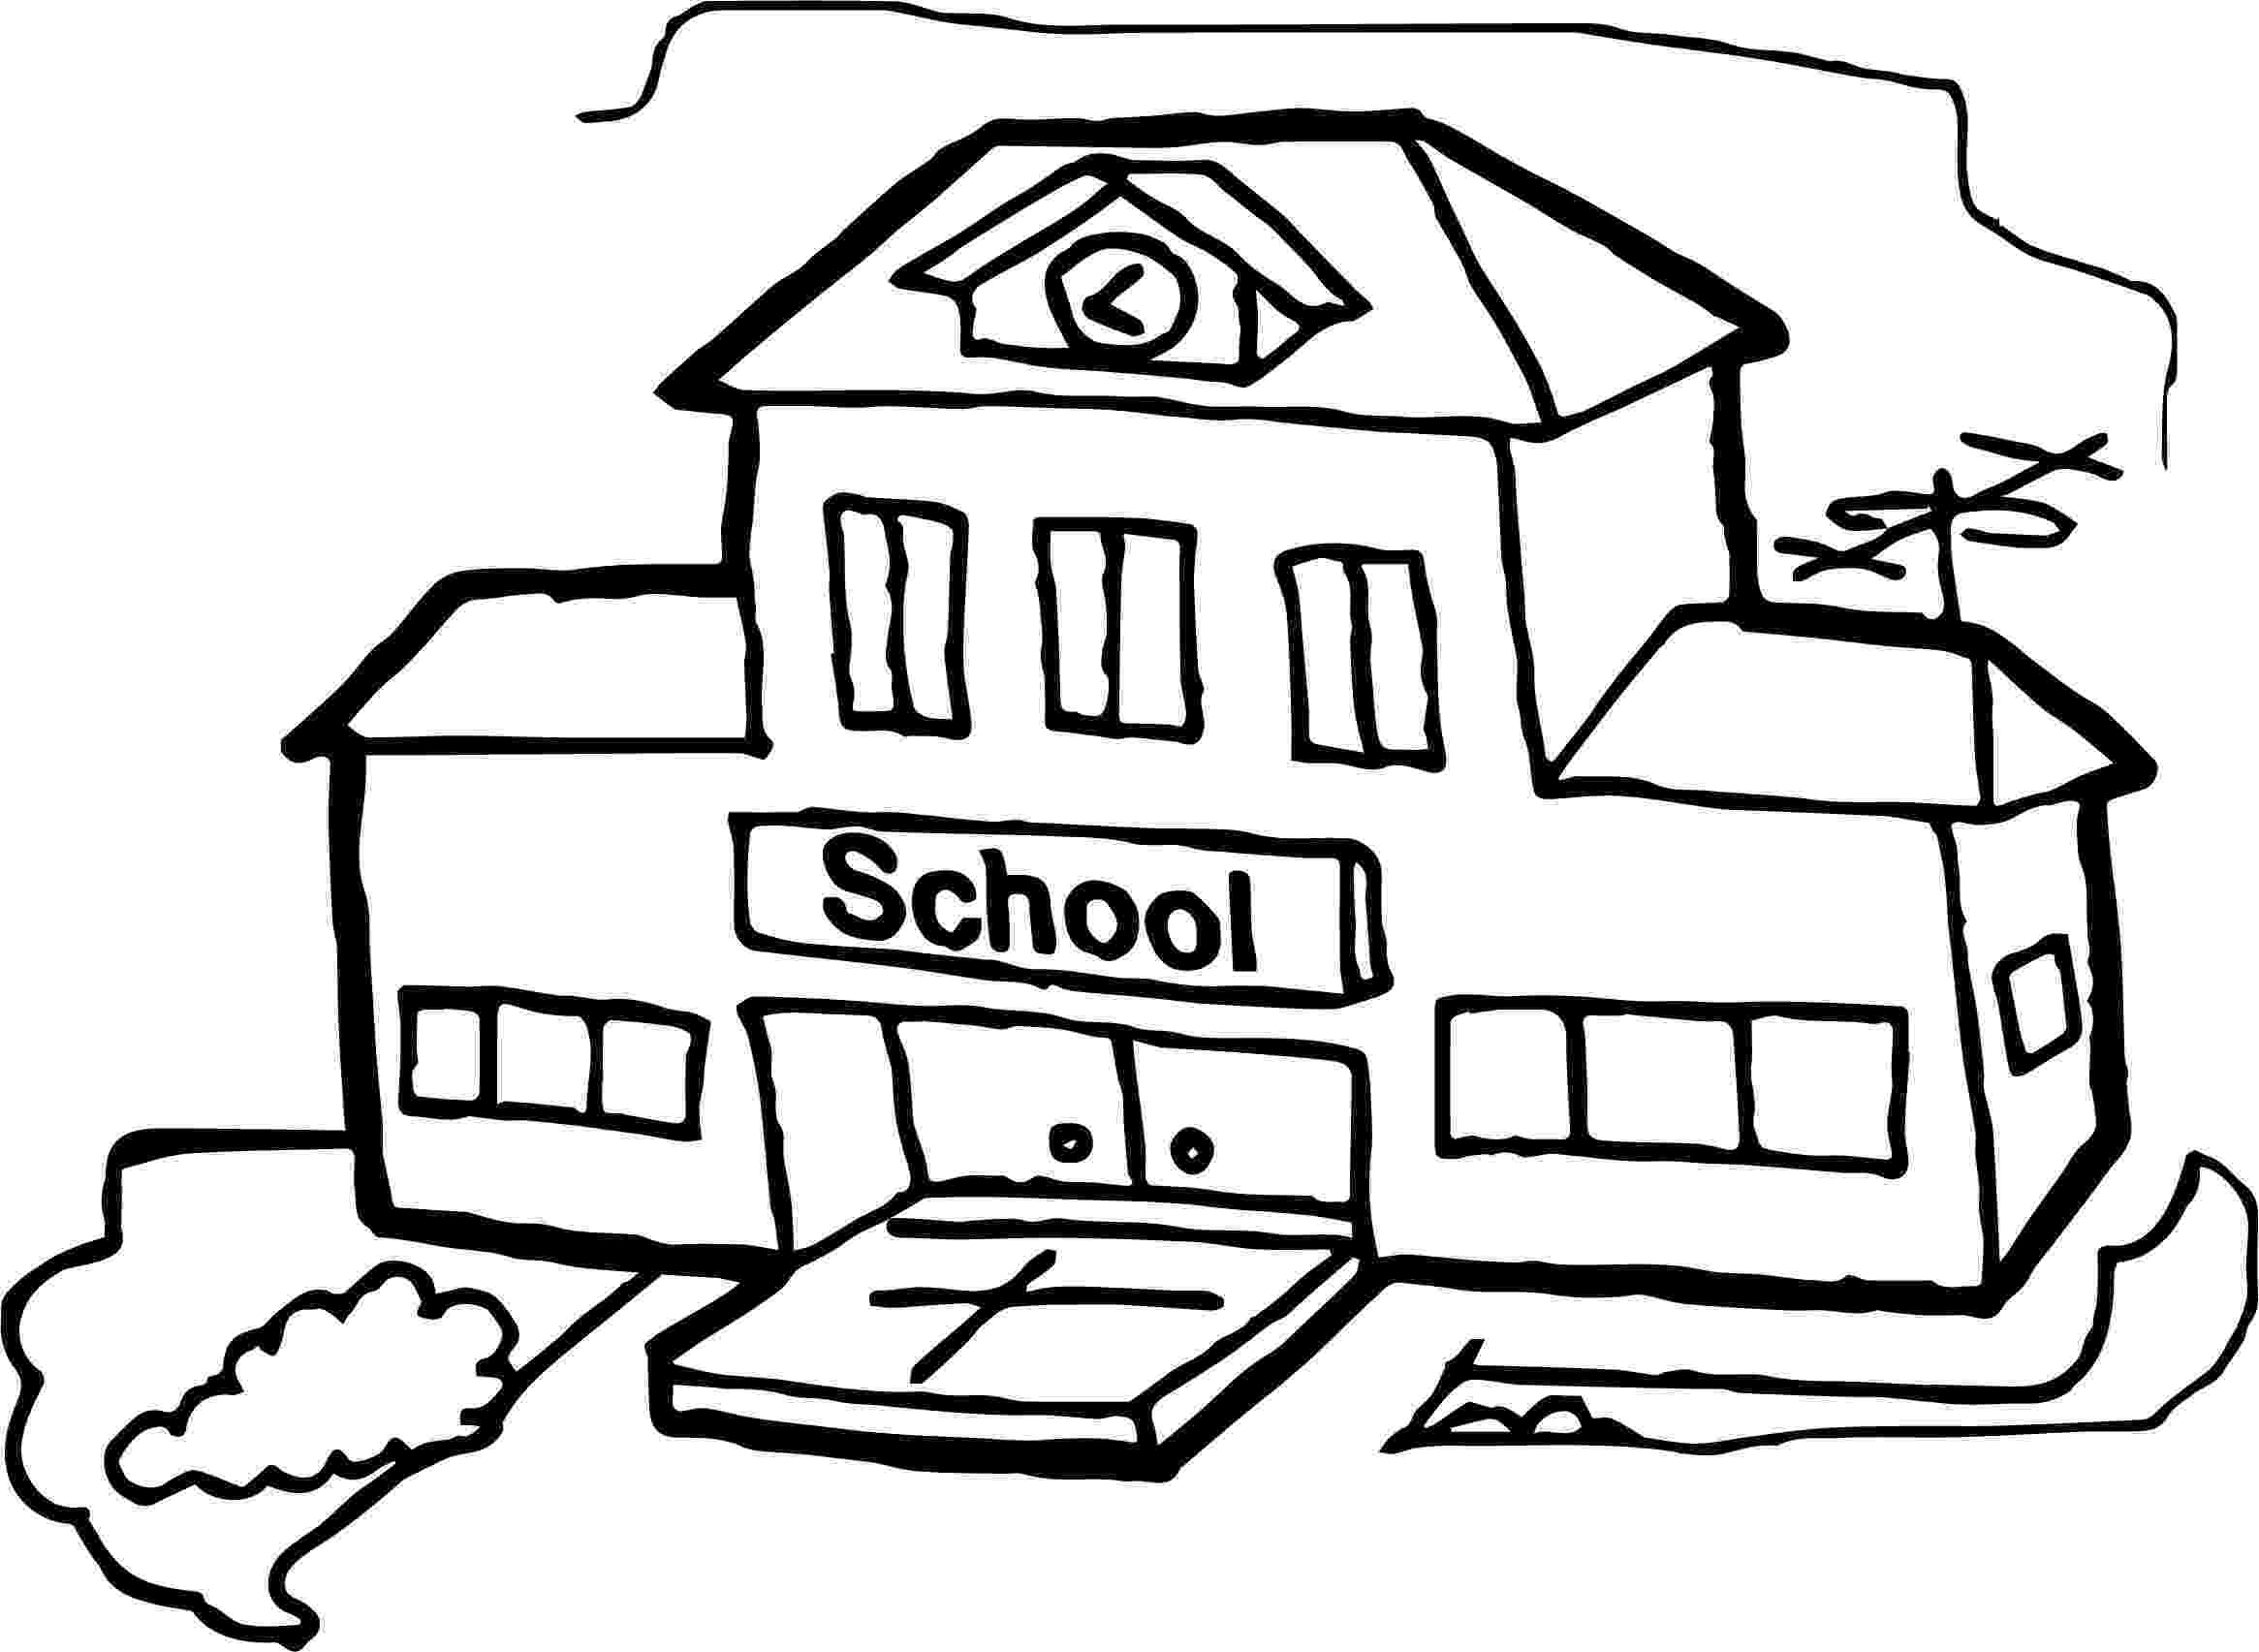 school building coloring pages school line drawing at getdrawingscom free for personal building coloring school pages